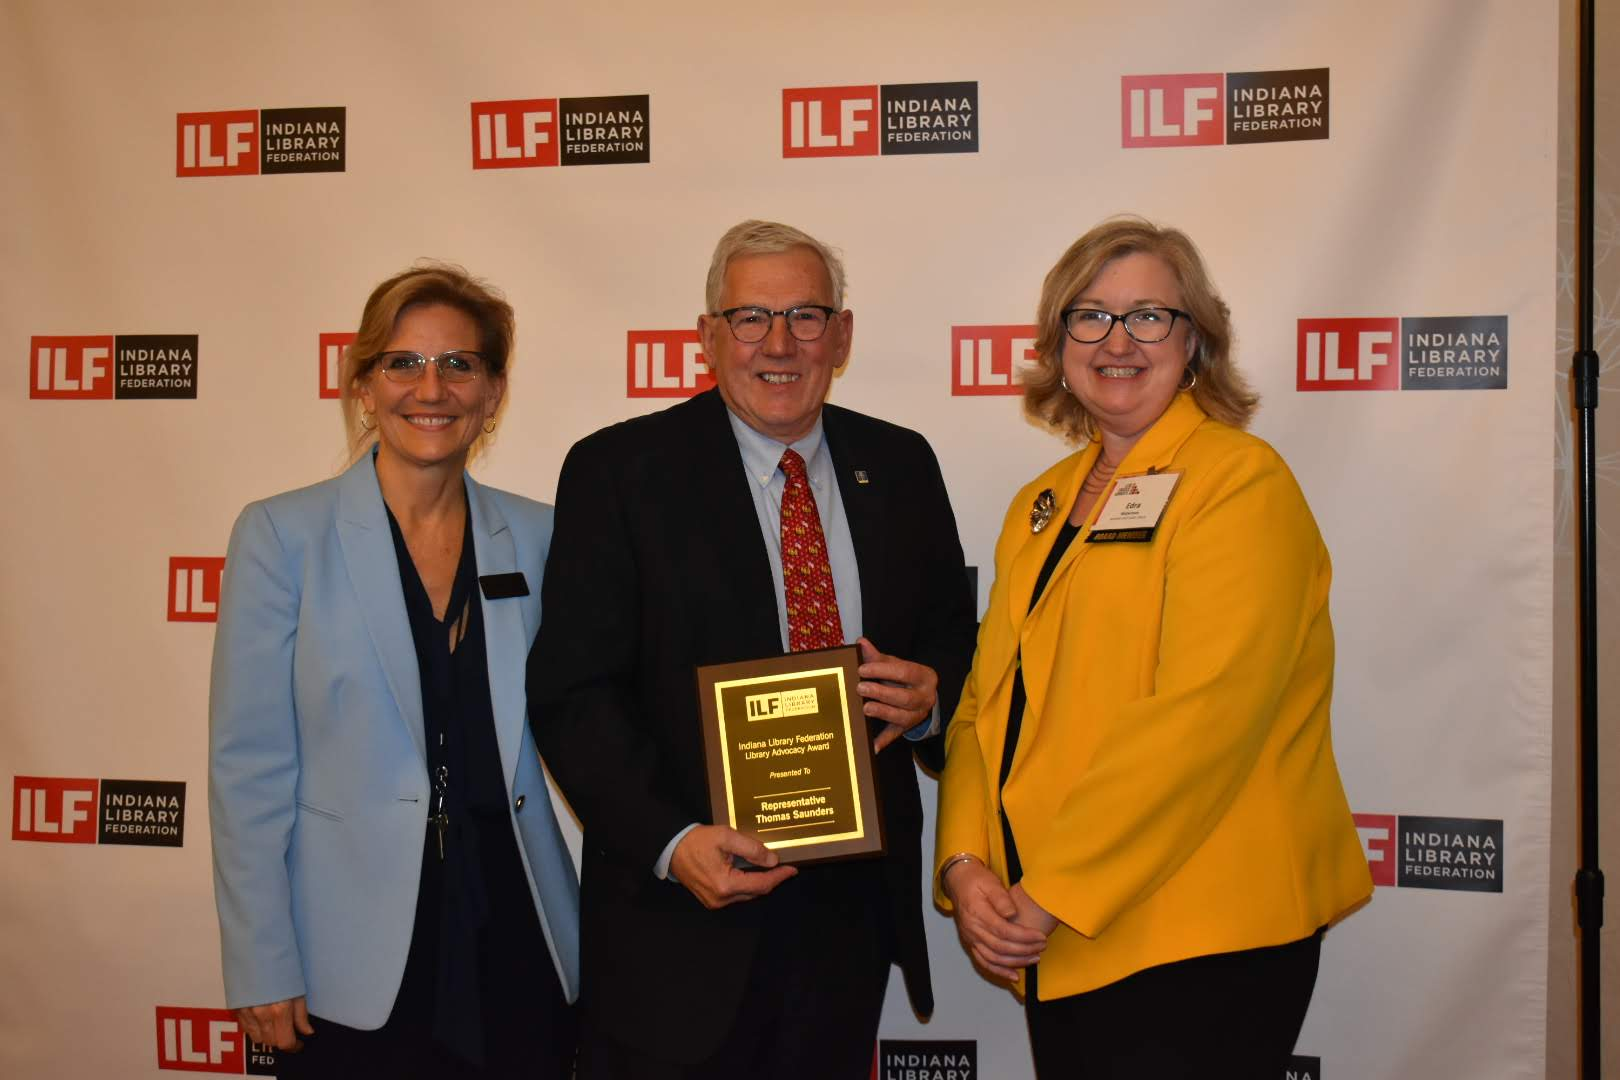 Rep. Tom Saunders with Lucinda Nord and Edra Waterman receiving ILF award